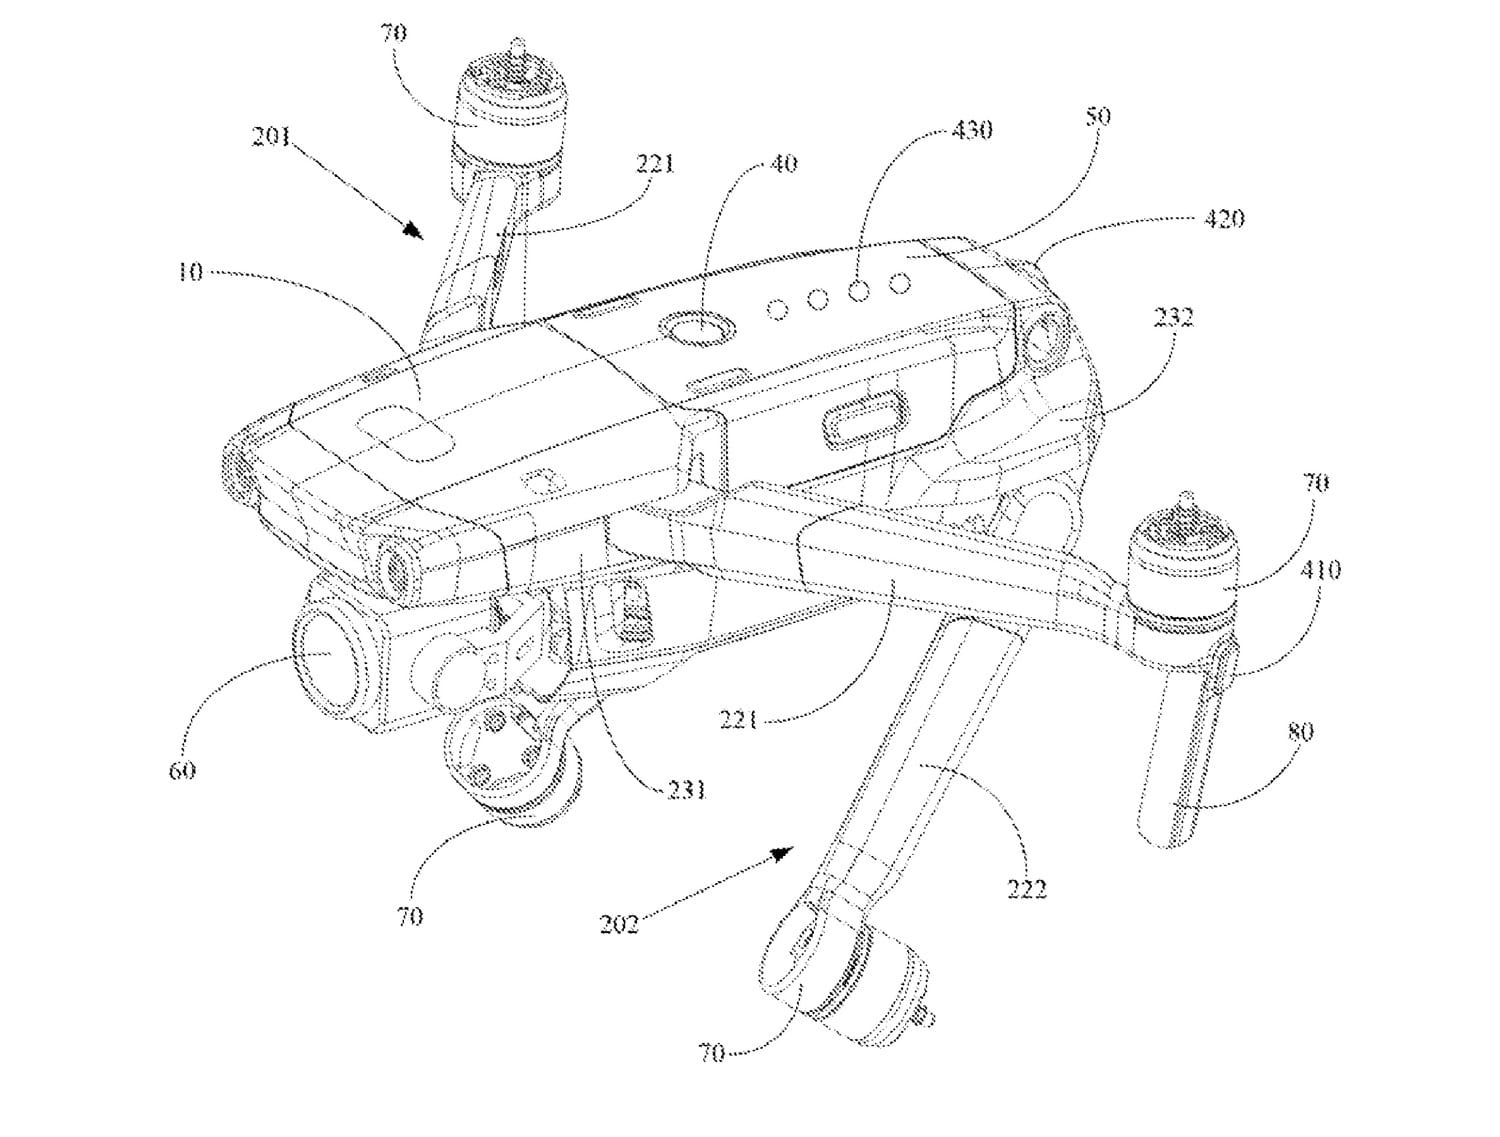 DJI Mavic 3 not shown in patent filing